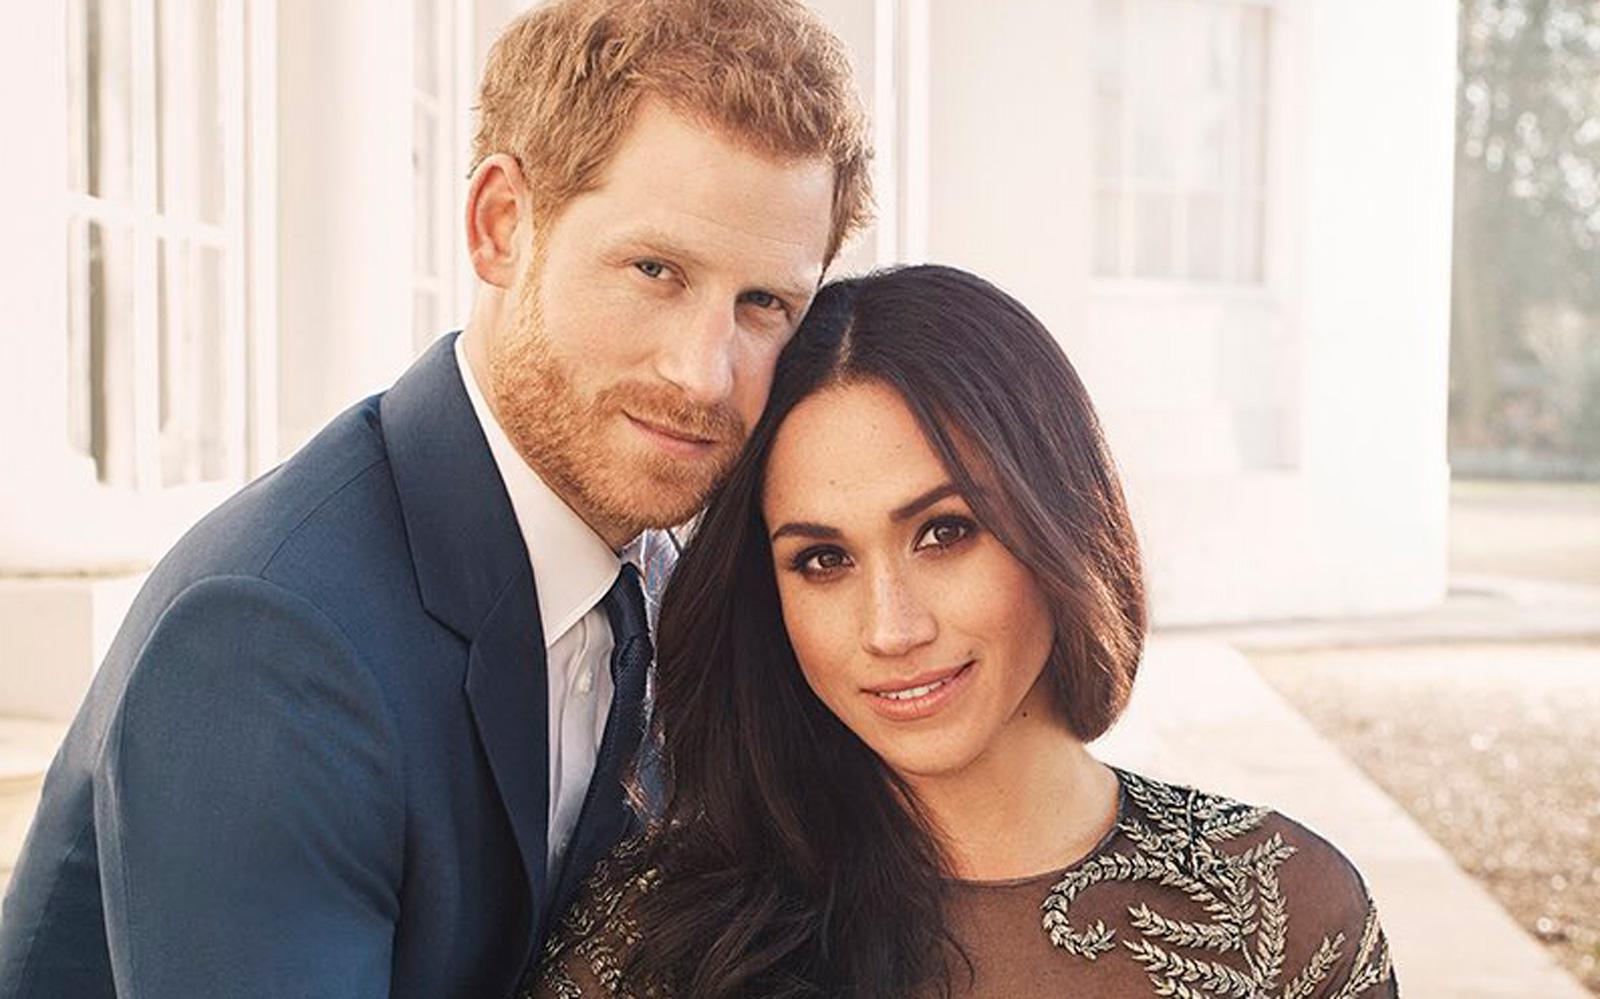 Harry and Meghan Engagement Photo